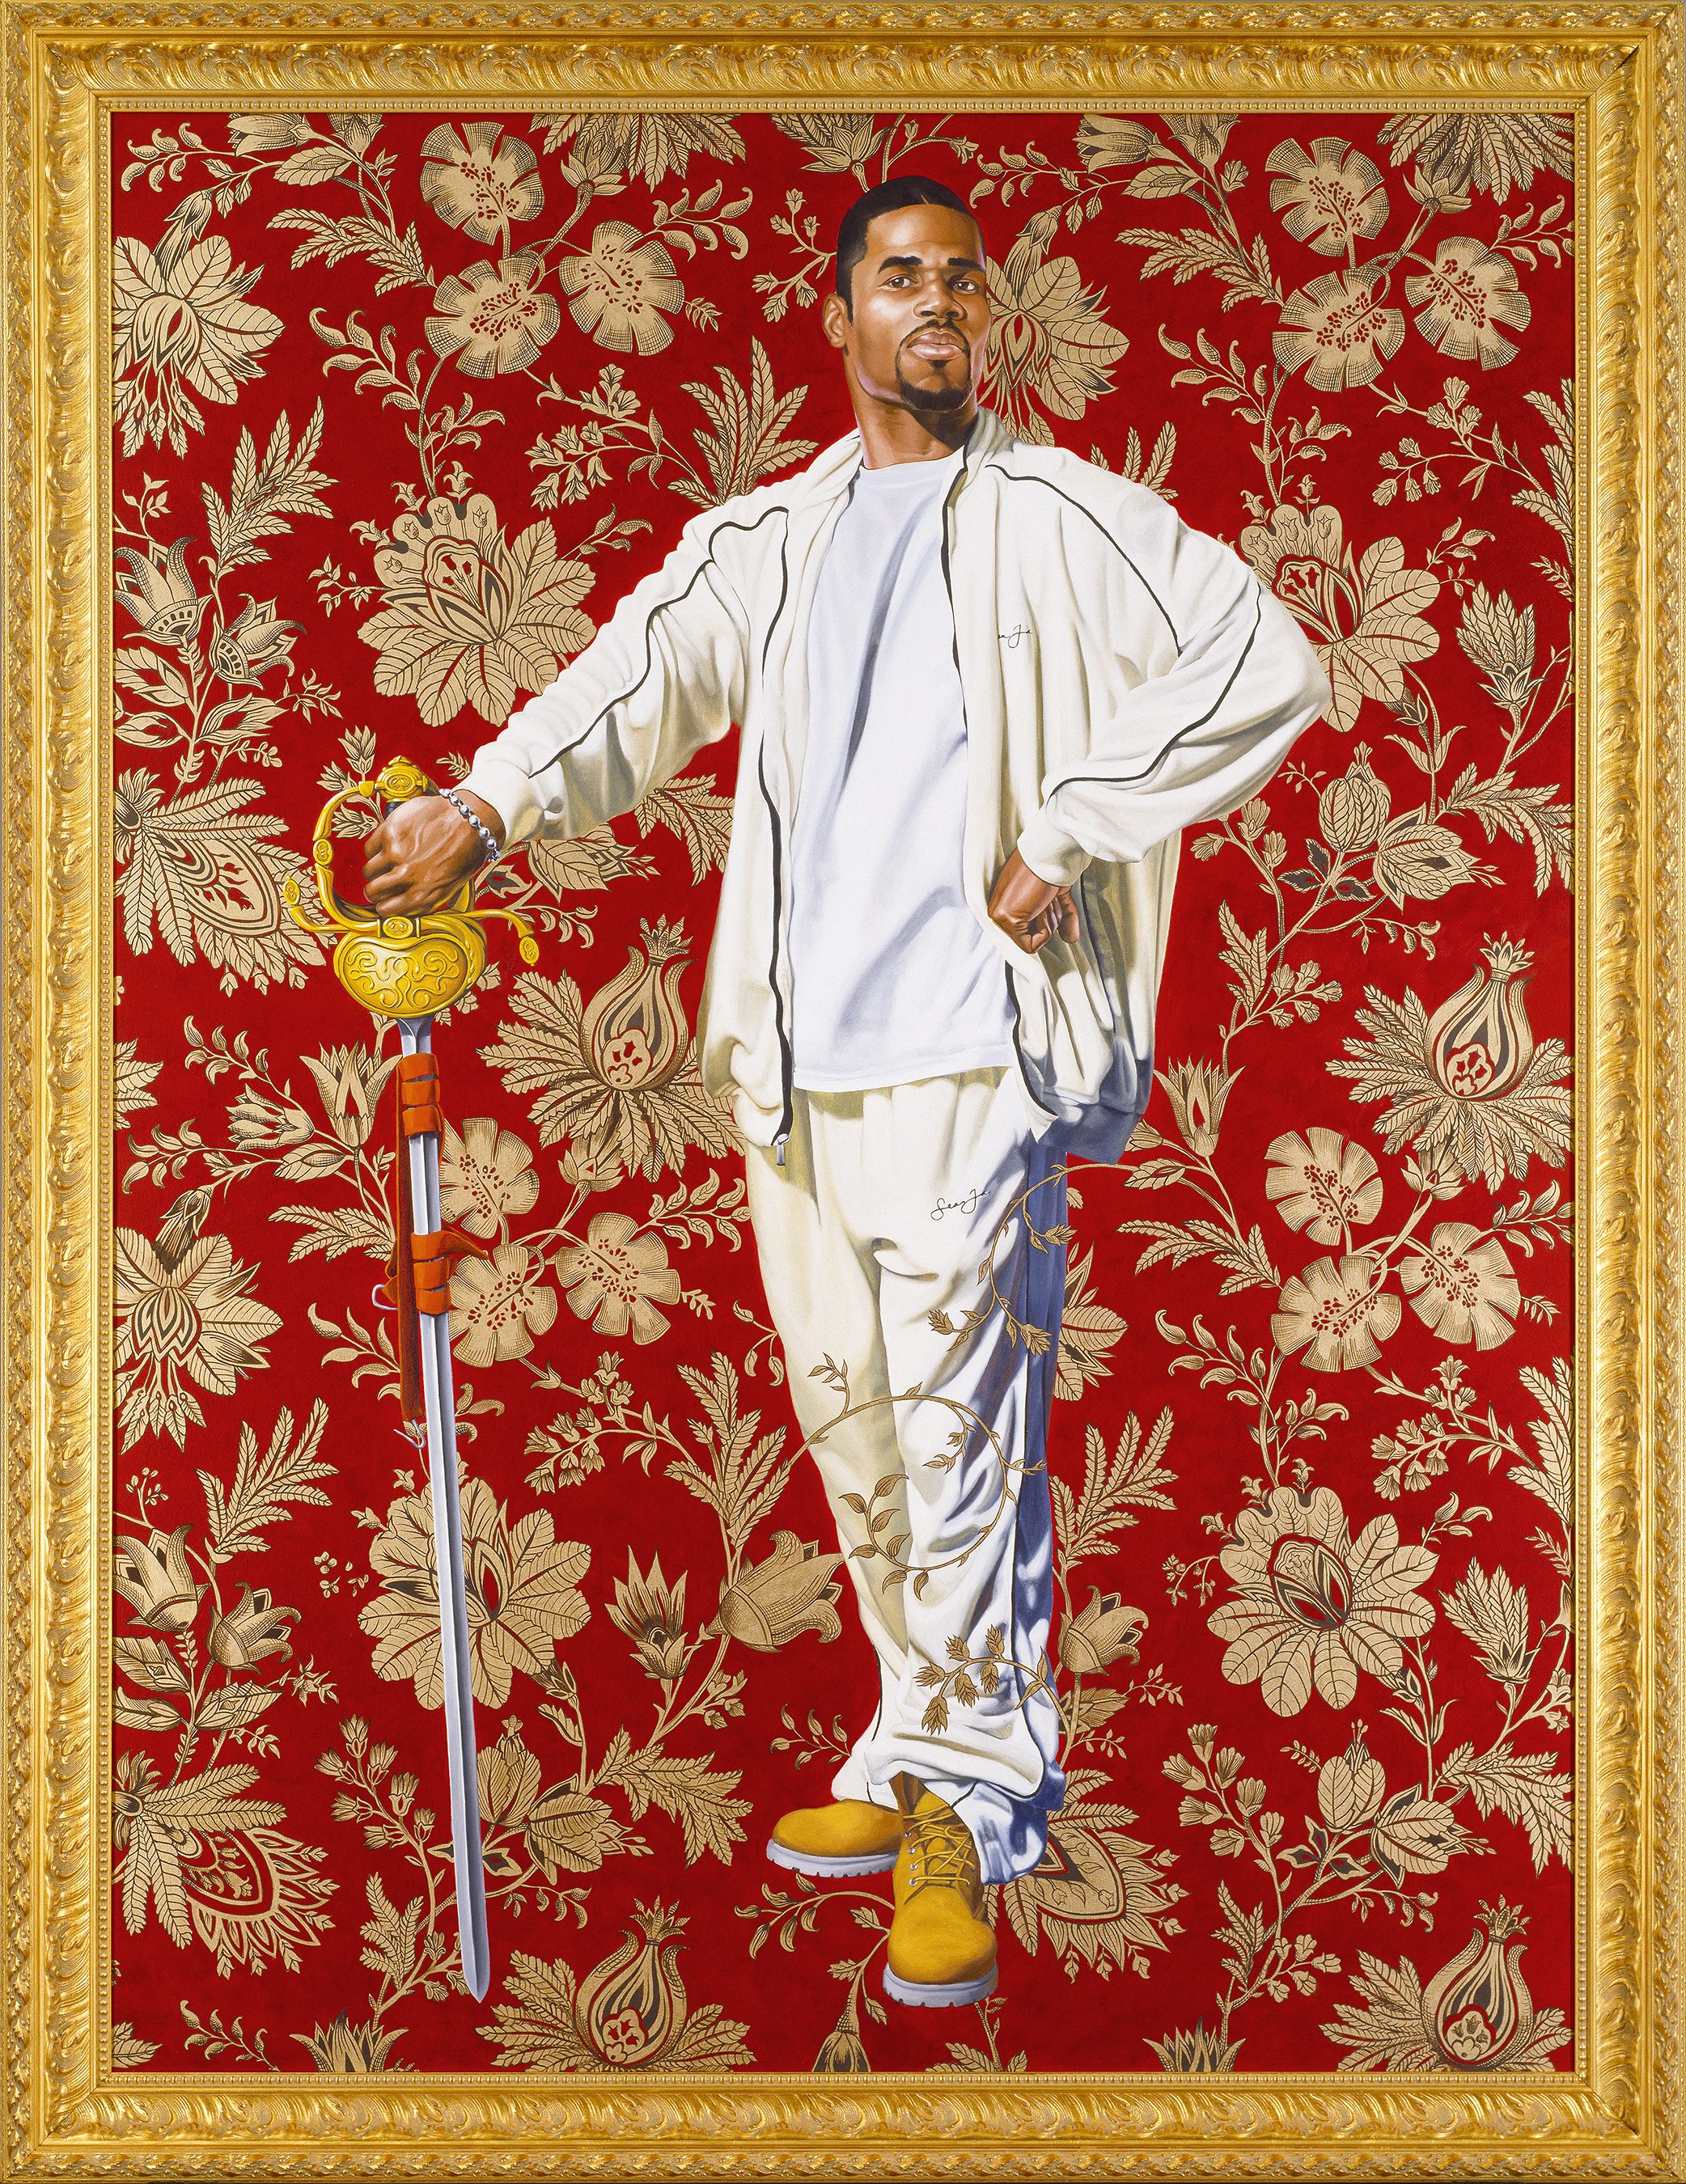 Kehinde Wiley,   Willem van Heythuysen,  2006  Oil and enamel on canvas, Virginia Museum of Fine Arts, Arthur and Margaret Glasgow Fund. © Kehinde Wiley  Image courtesy of VMFA